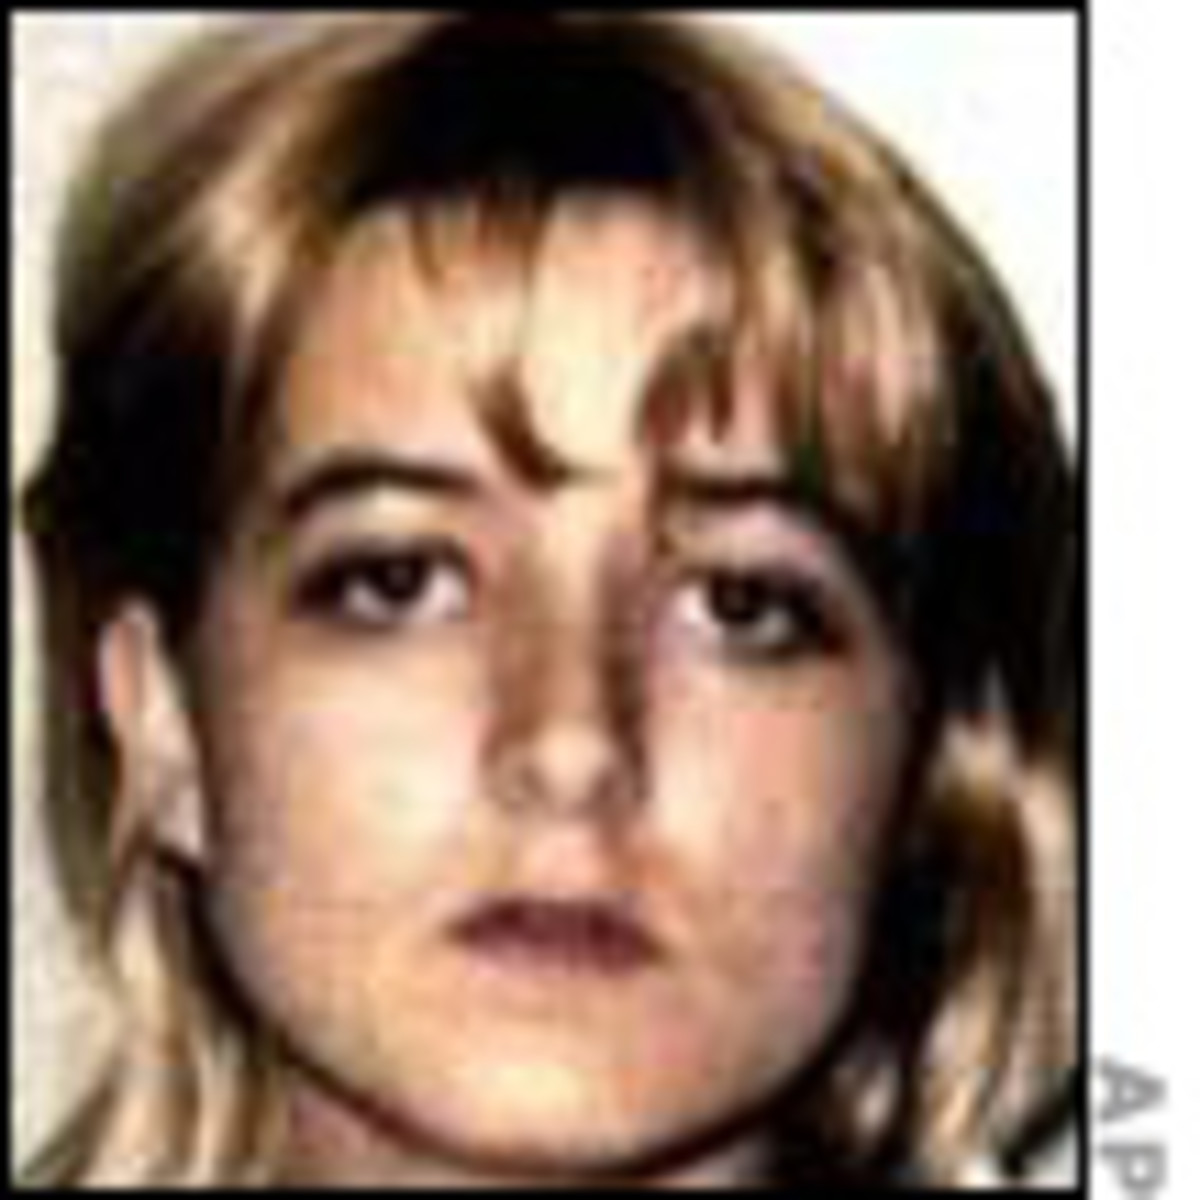 Darlie Routier -- Source:  http://i.cdn.turner.com/trutv/trutv.com/graphics/photos/notorious_murders/women/routier/1a.jpg